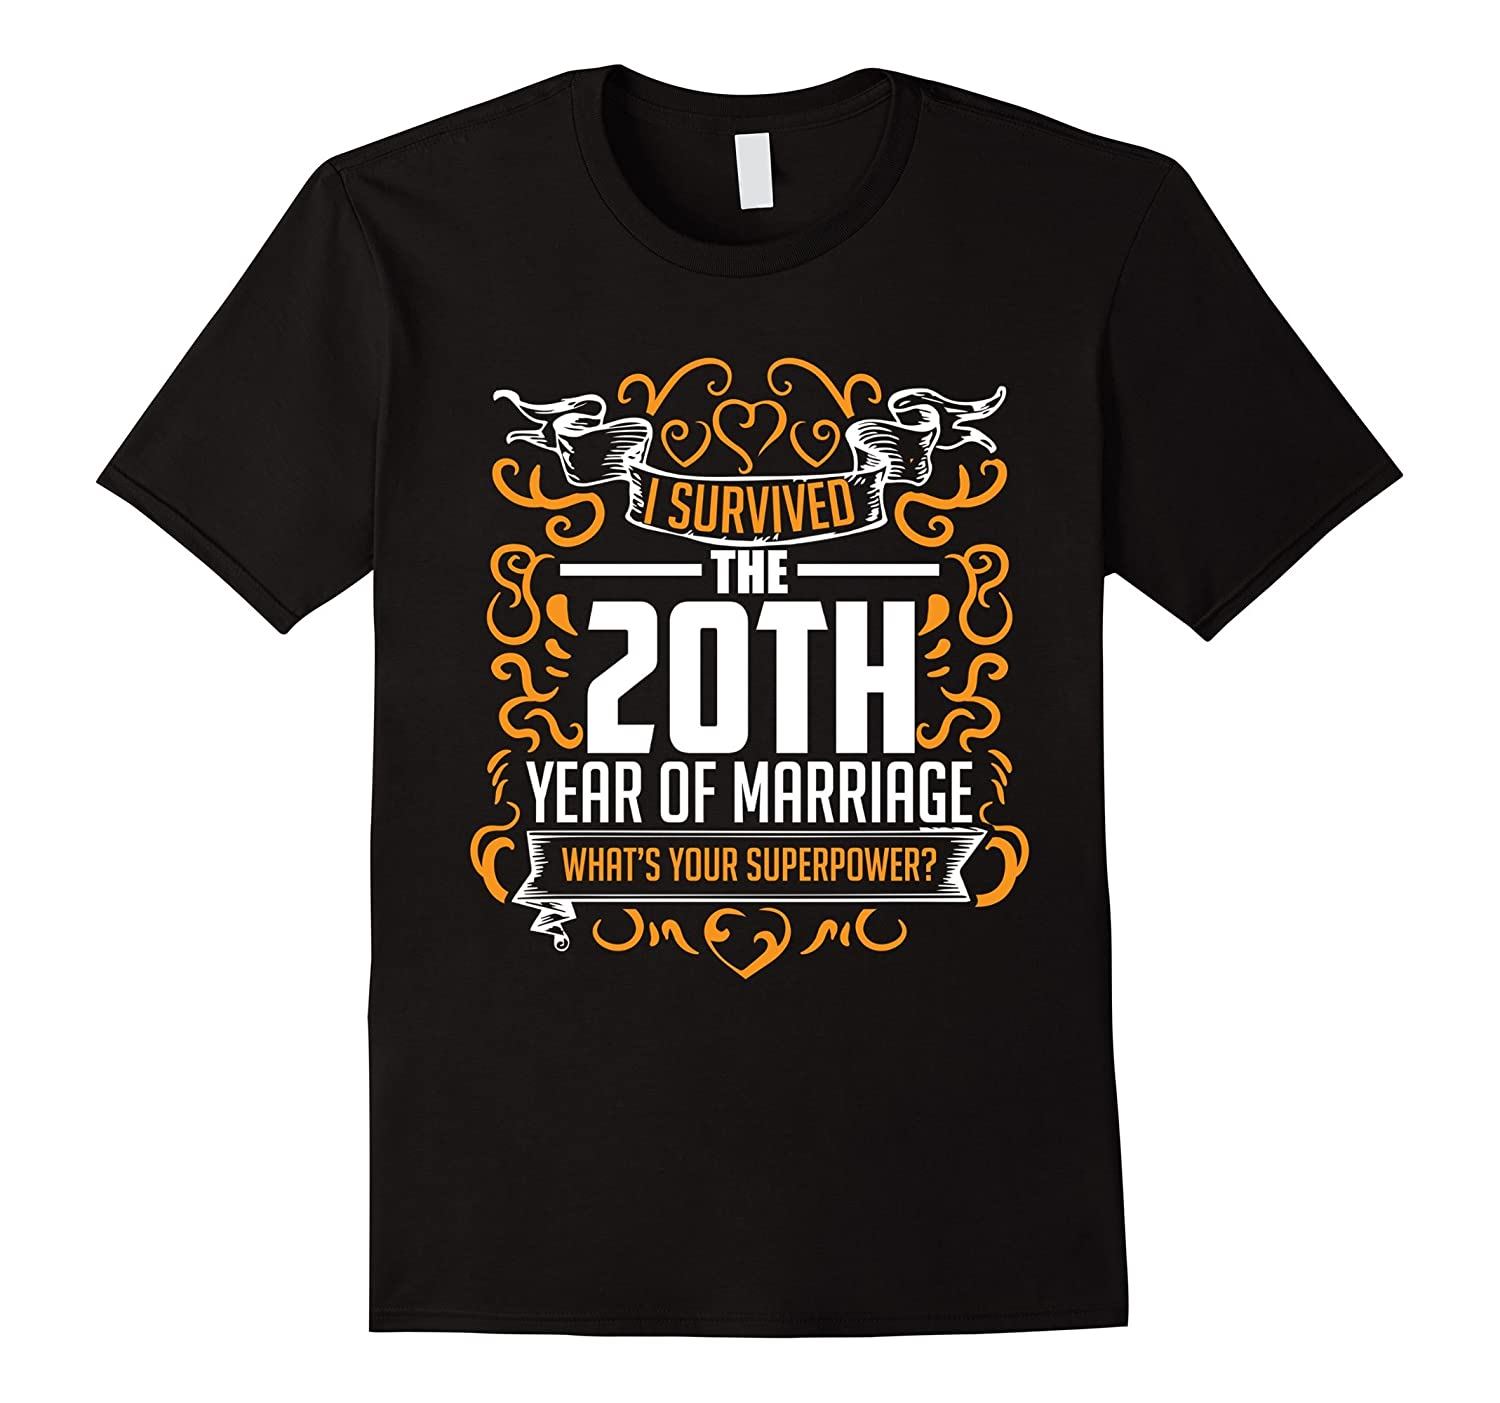 20 Year Wedding Anniversary Gifts For Her: 20th Wedding Anniversary Gifts 20 Year T Shirt For Her And